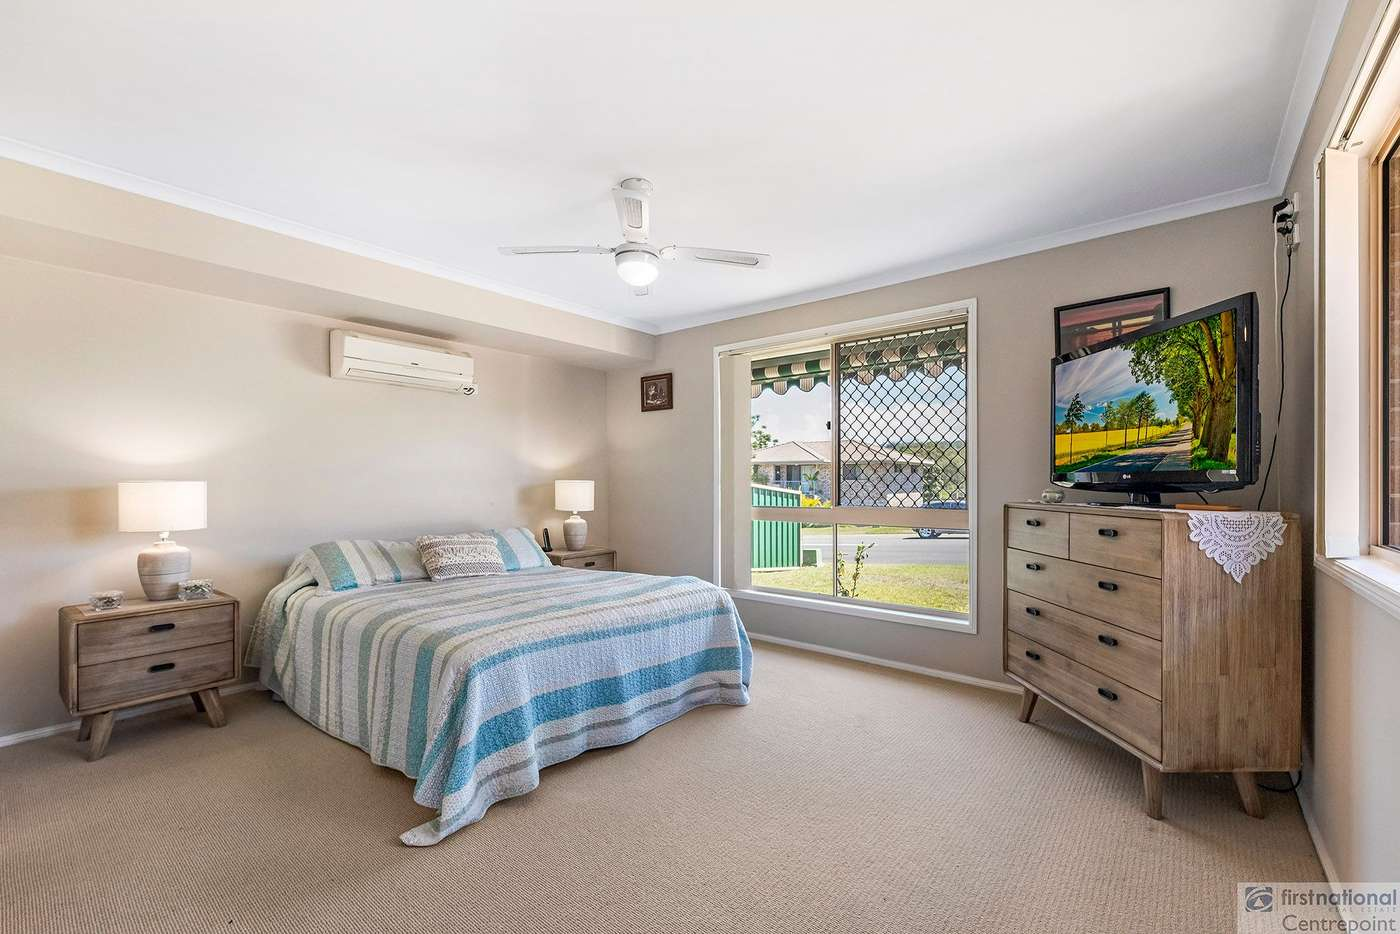 Sixth view of Homely house listing, 62 Delta Cove Drive, Worongary QLD 4213